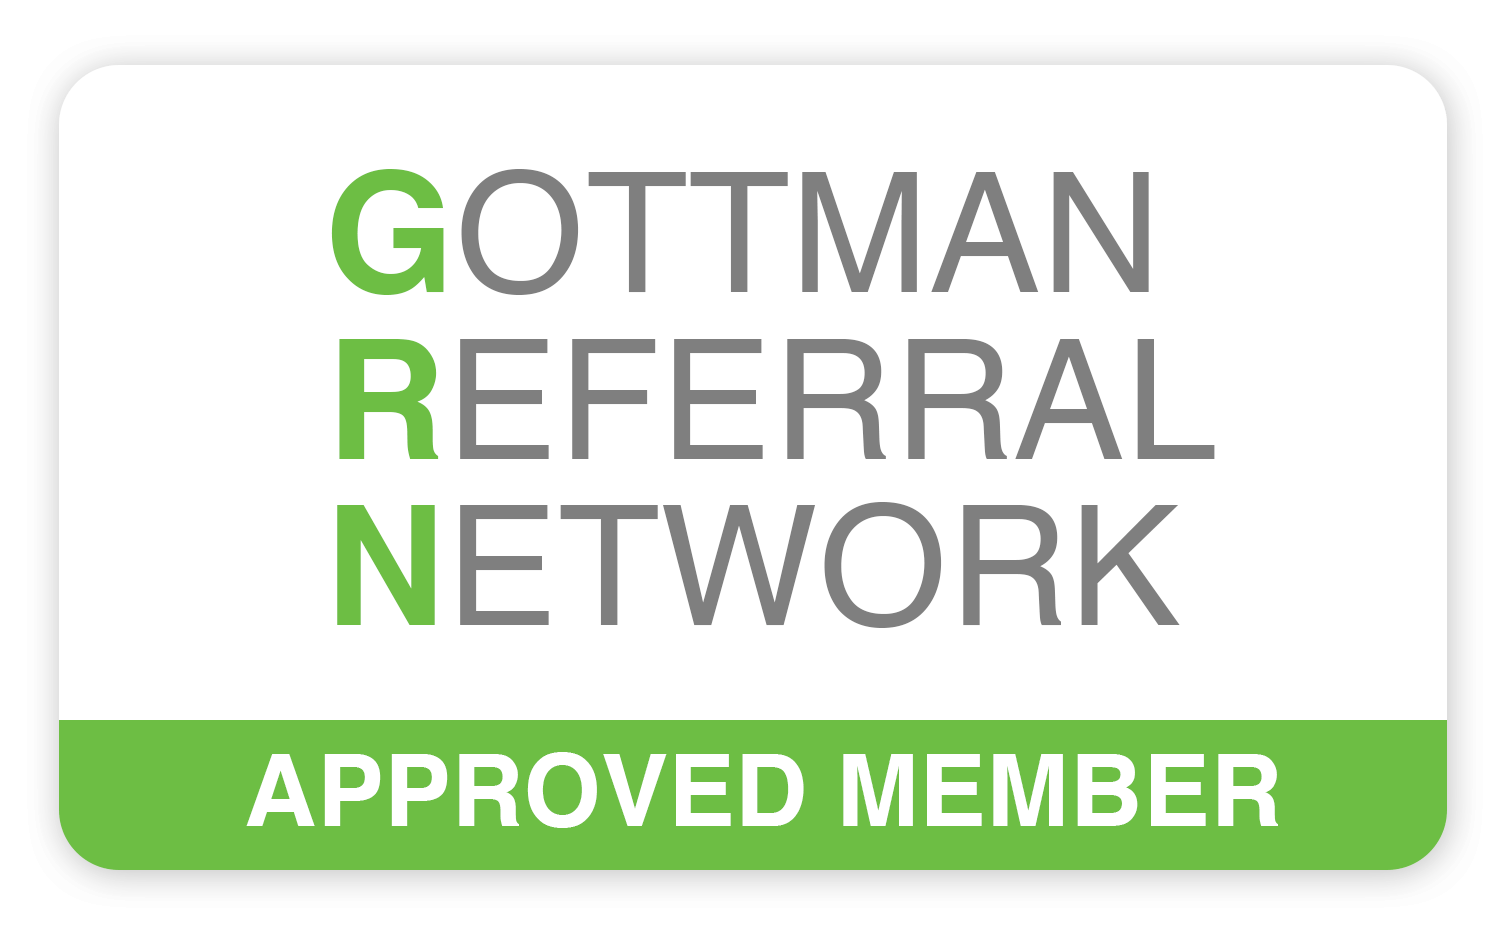 Dr. Shannon Curry's profile on the Gottman Referral Network